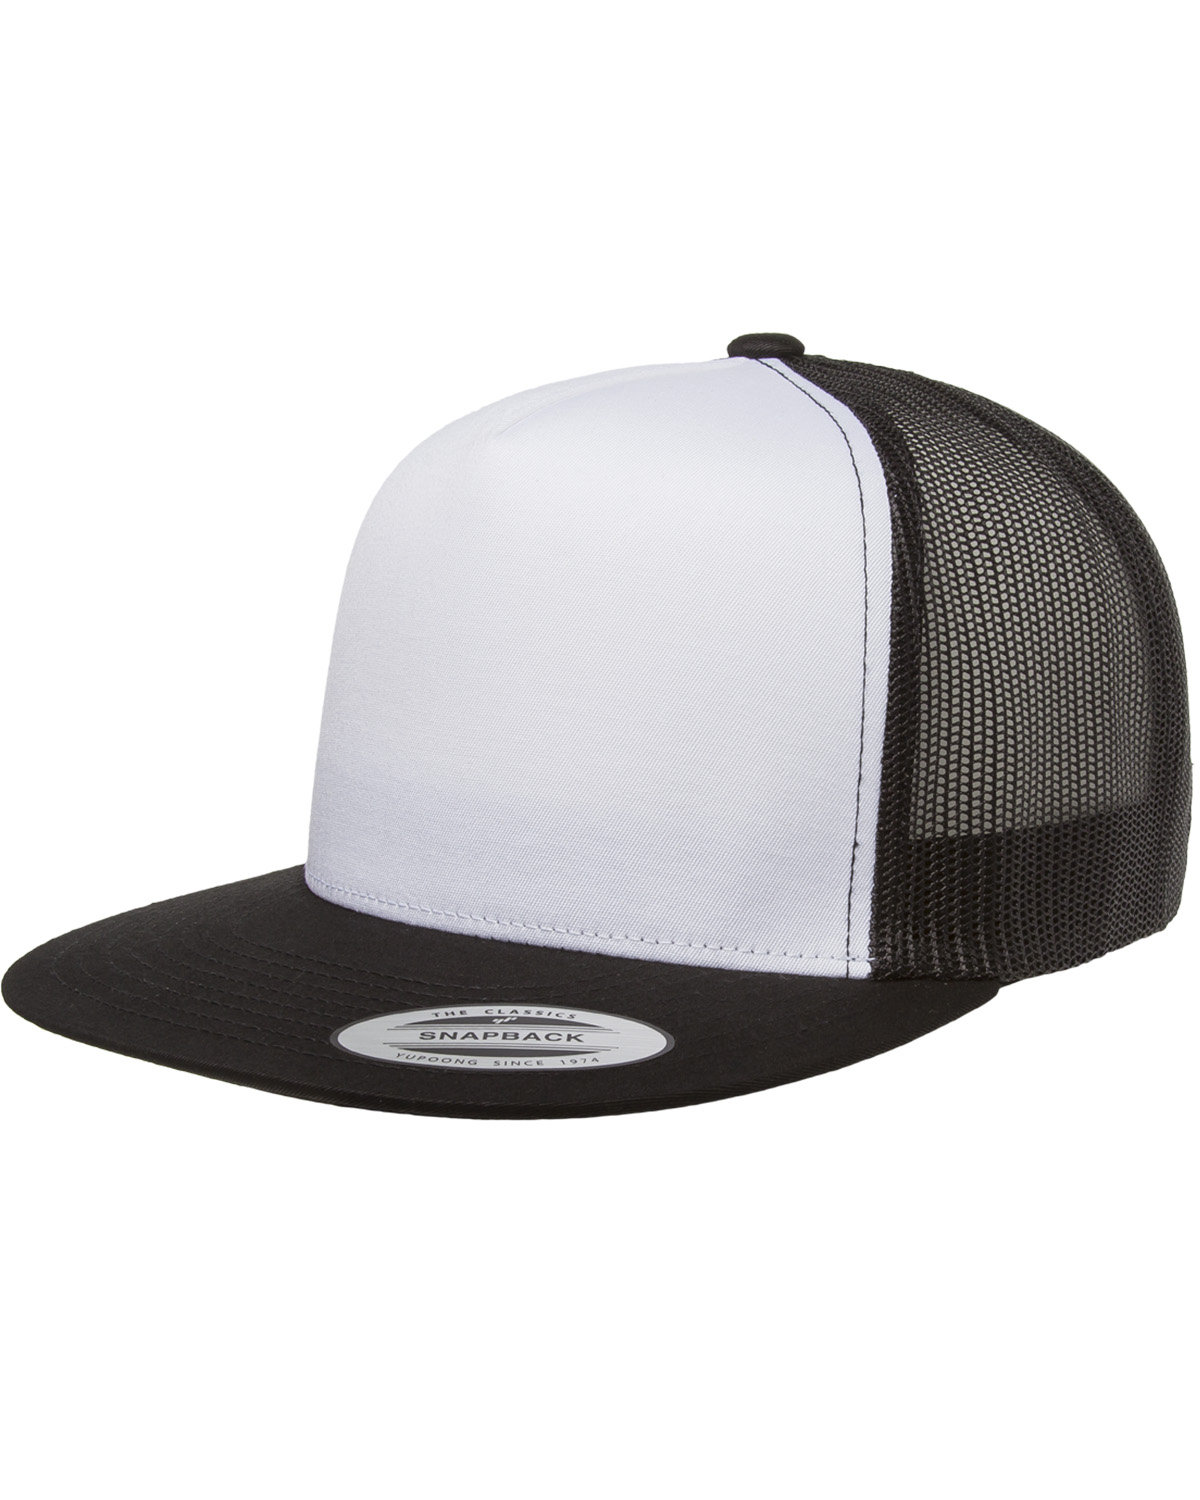 Yupoong Adult Classic Trucker with White Front Panel Cap BLACK/ WHT/ BLK